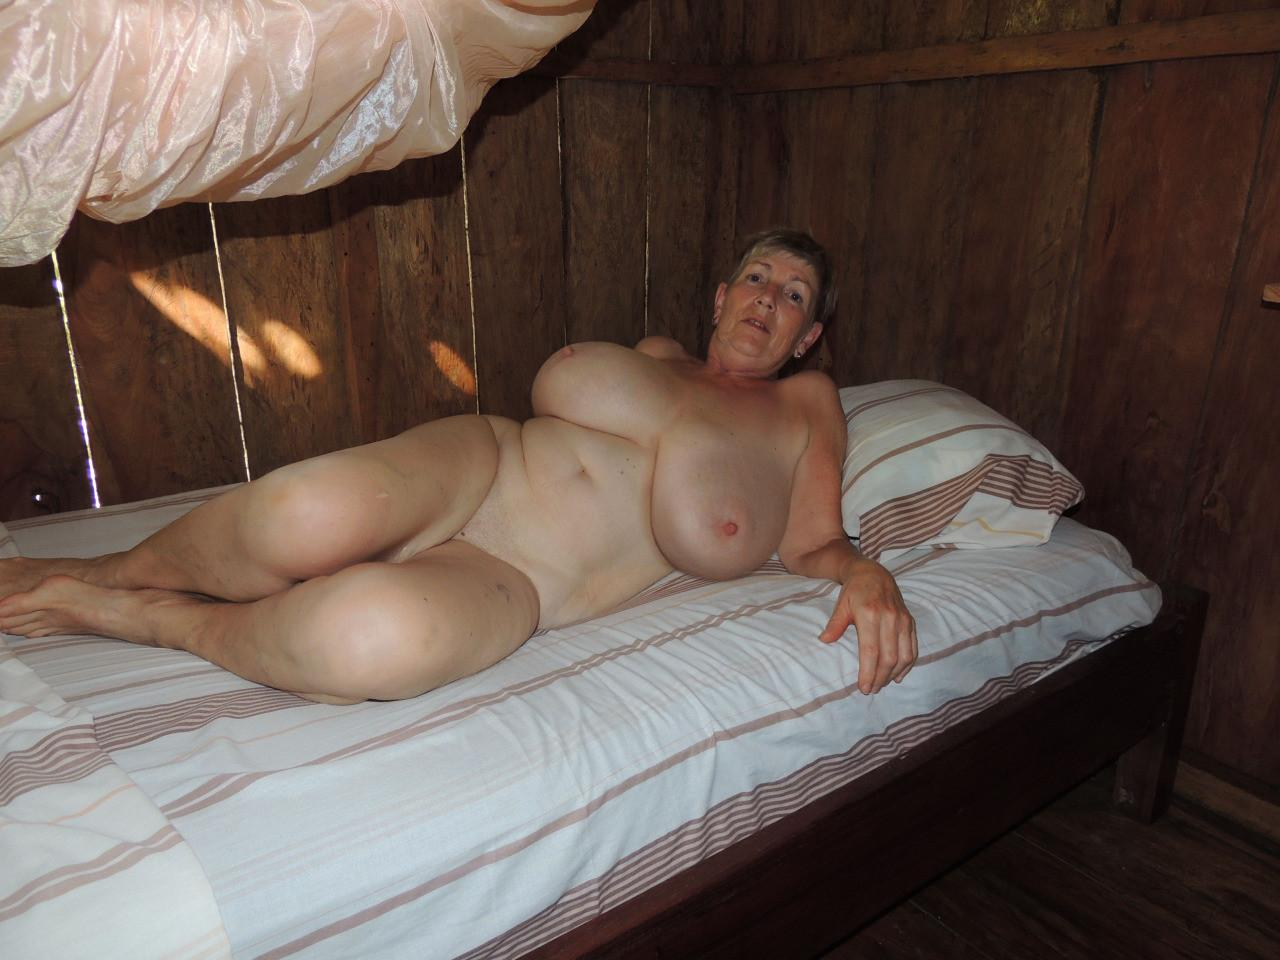 Nude granny show big natural tits. Fatty mature lady looks like a million dollars. Hot granny with big boobs strips and shows old pussy lying on the bed